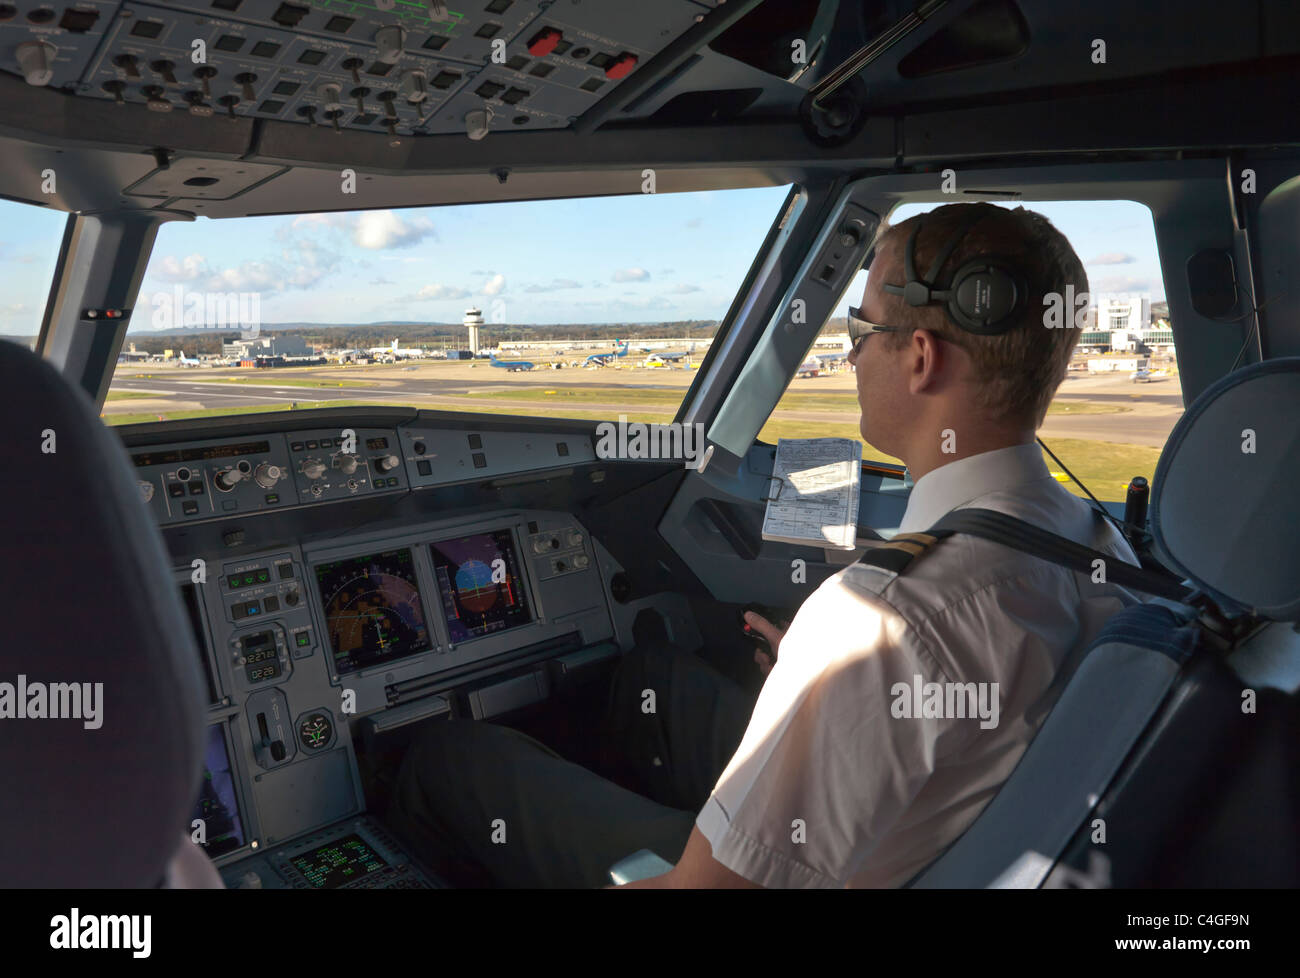 Pilot at controls of an Airbus A320 passenger aircraft - Stock Image